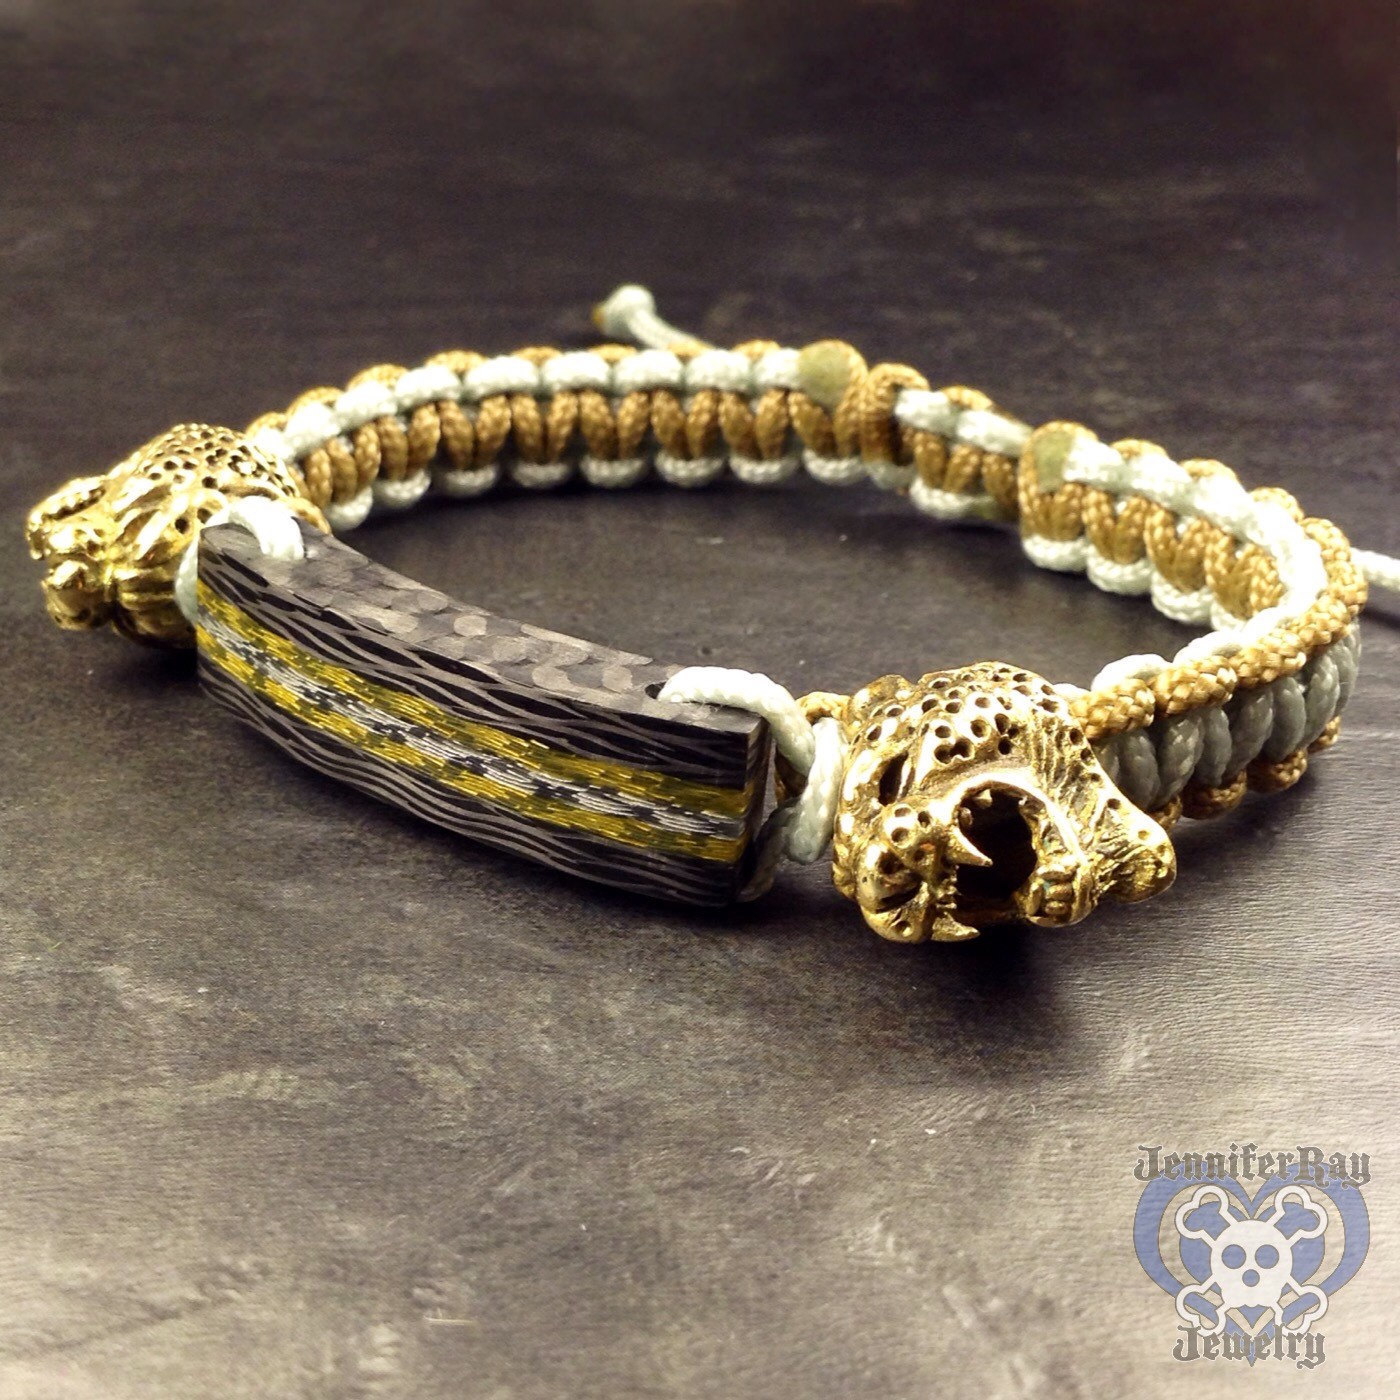 changer bracelet golden cats changer carbon fiber bracelet 2152